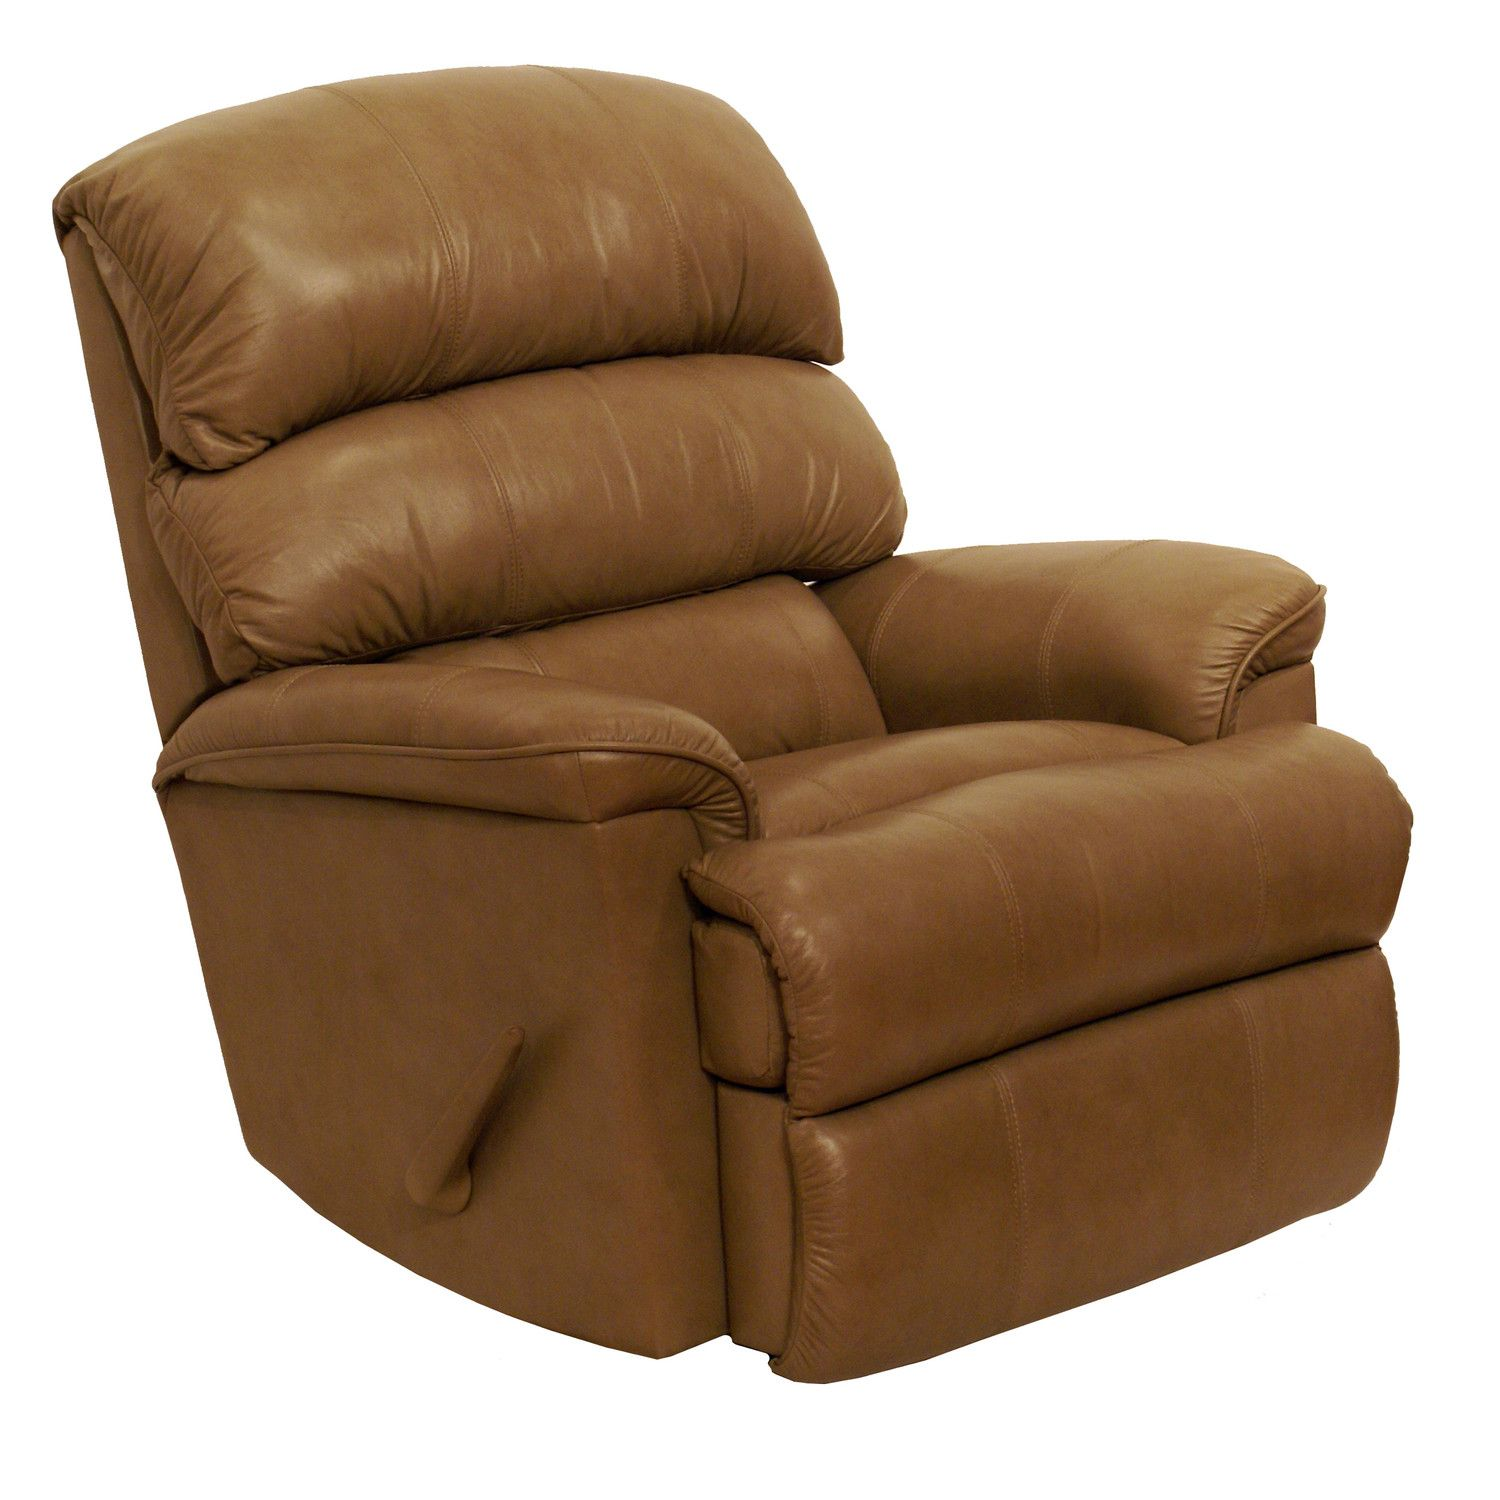 comforter perfect are ideas comfortable most relaxing homesfeed recliner chair the recliners for that